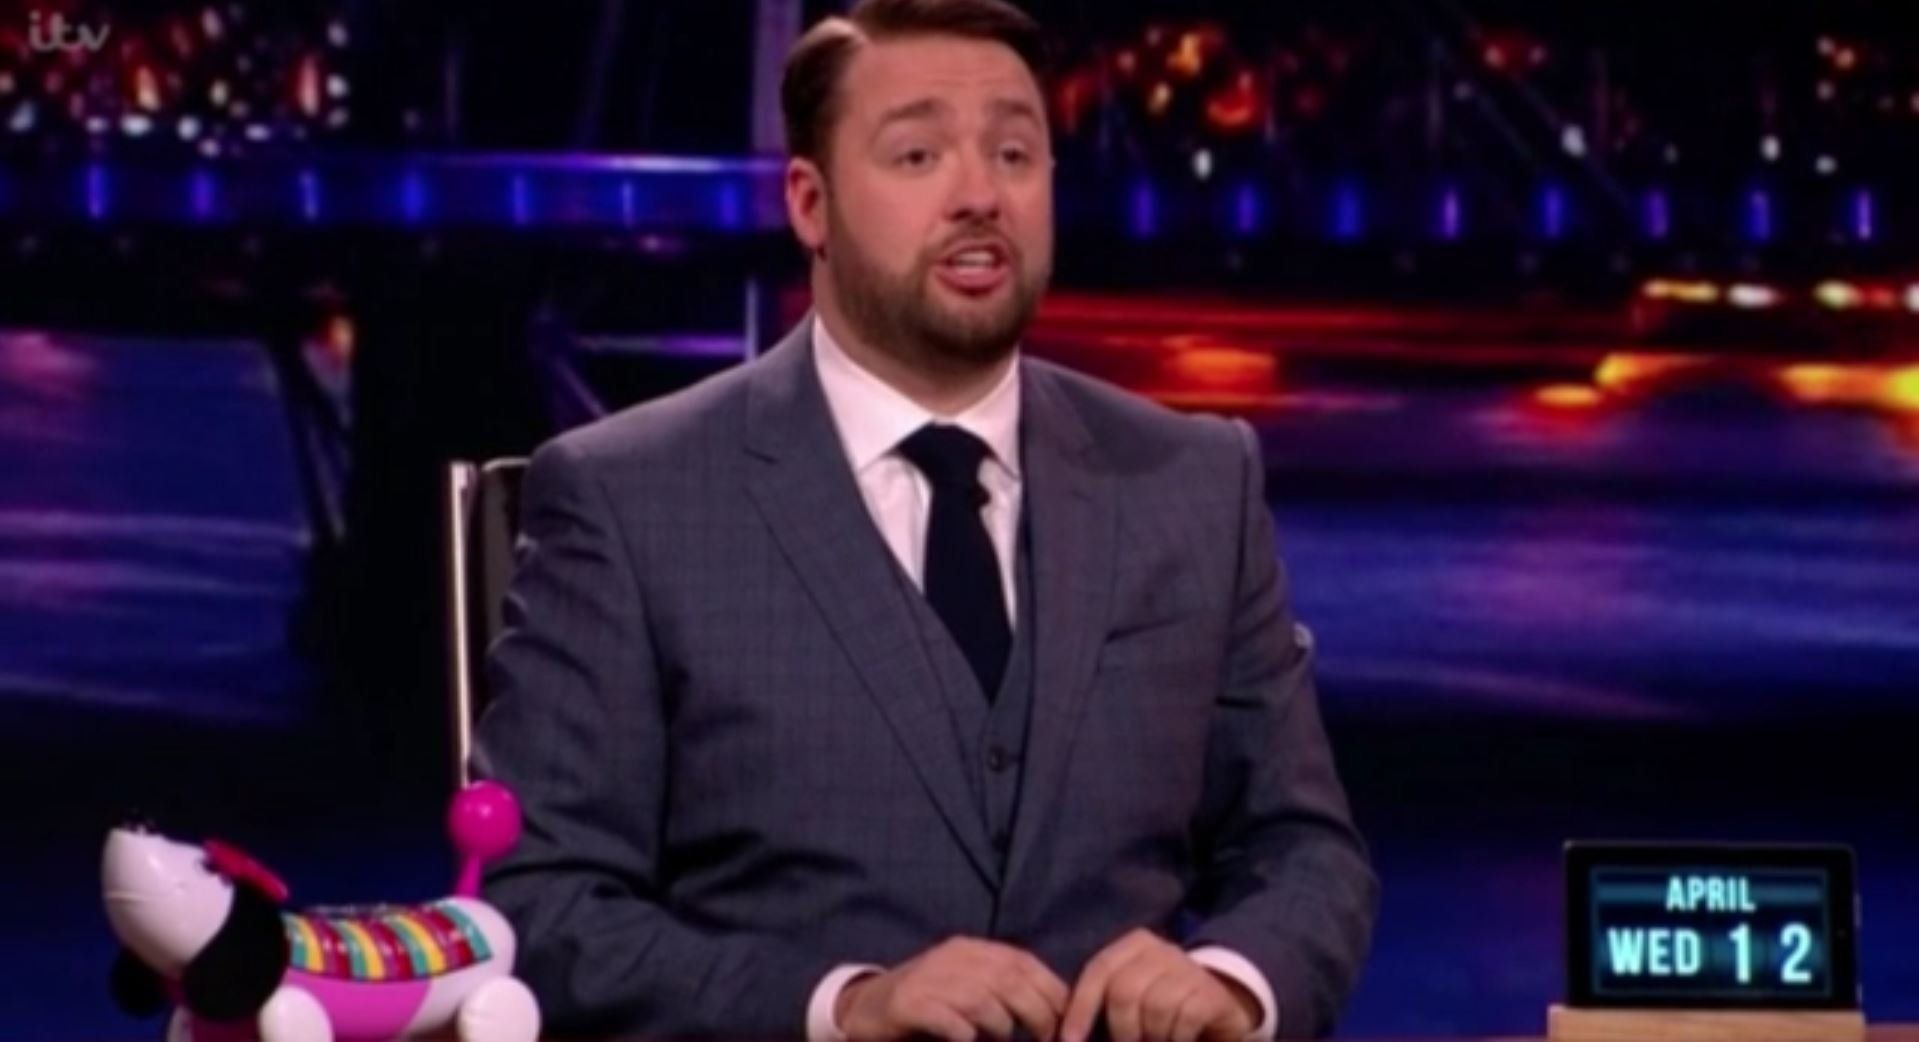 Jason Manford Shares Mortifying Holiday 'Ball' Story About His Daughter On 'The Nightly